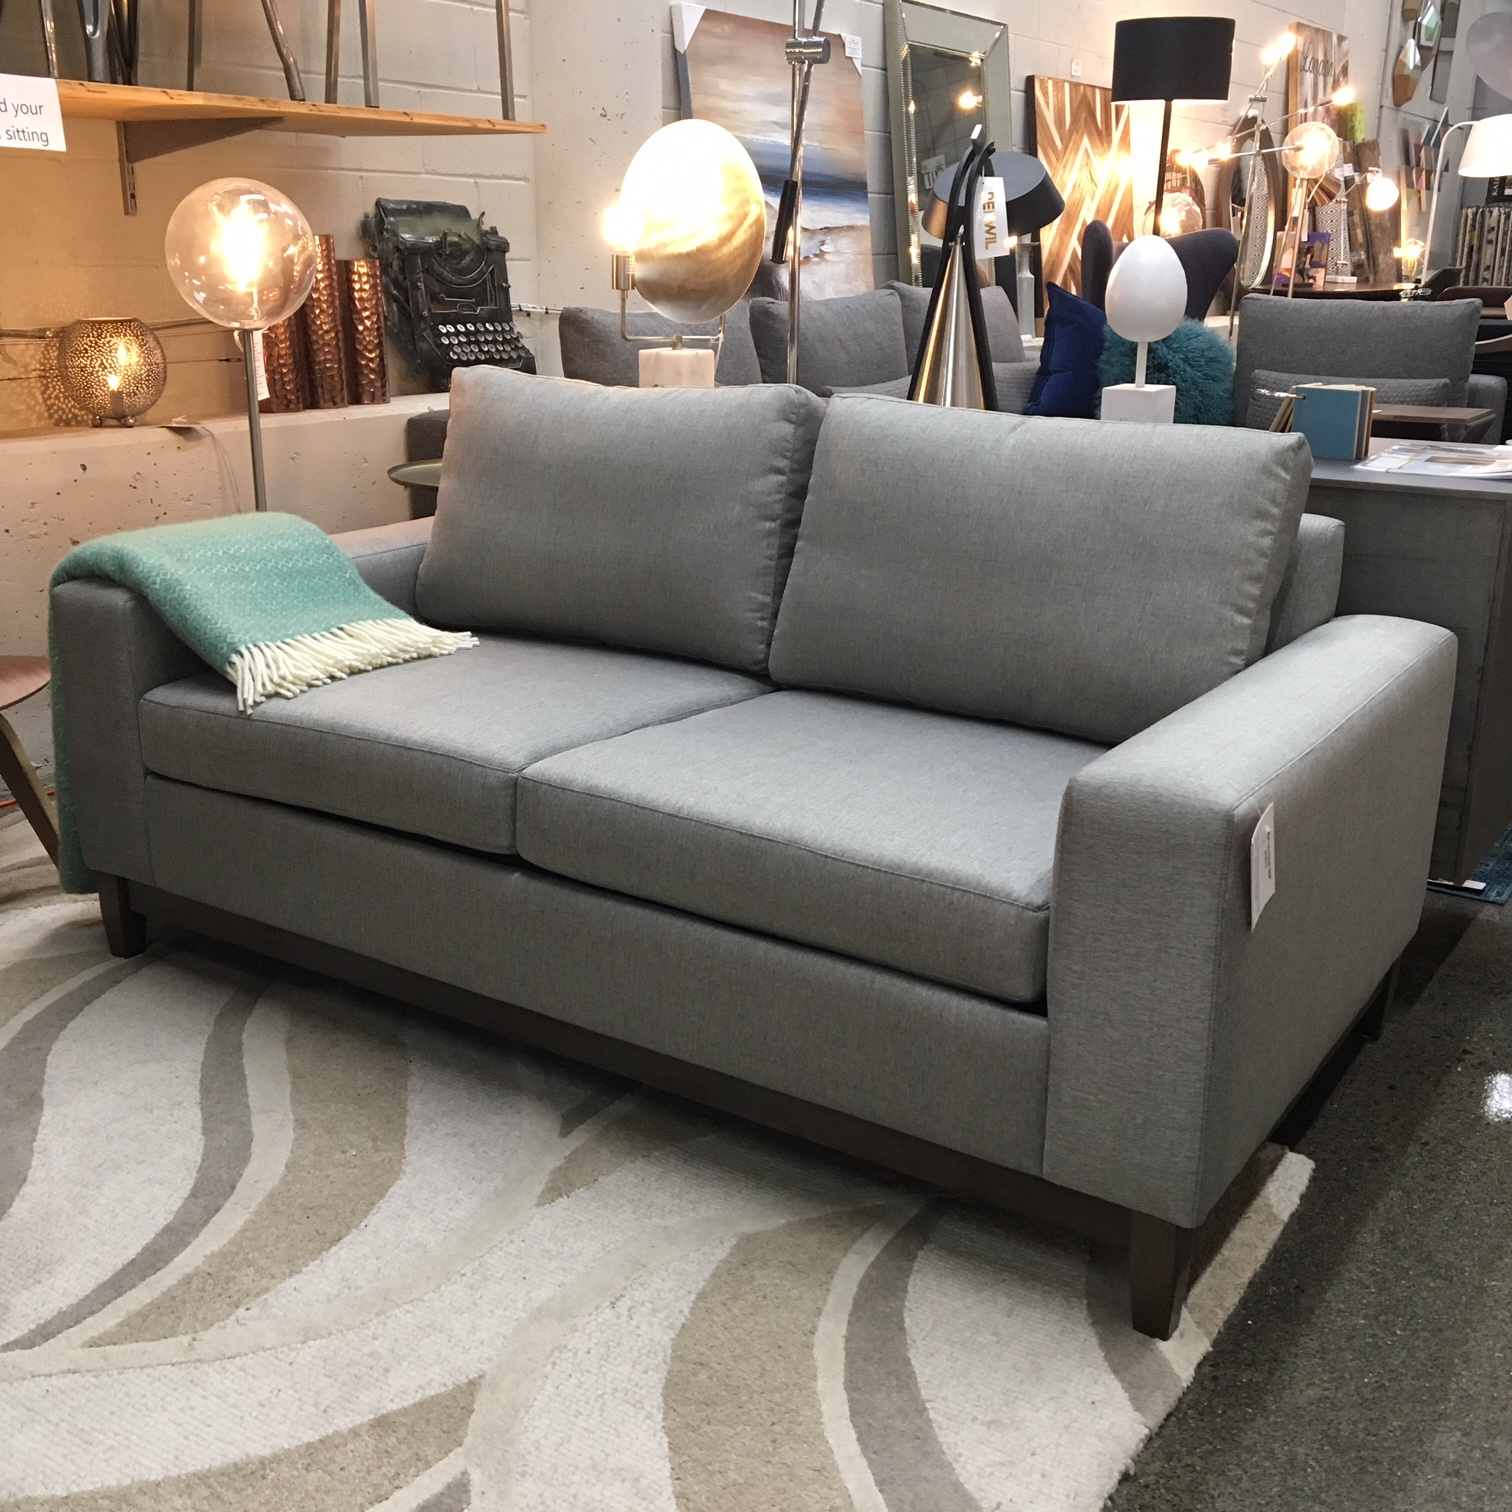 Mikaza Meubles Modernes Montreal: Home / Living / Sofas And Sectionals / Ellis